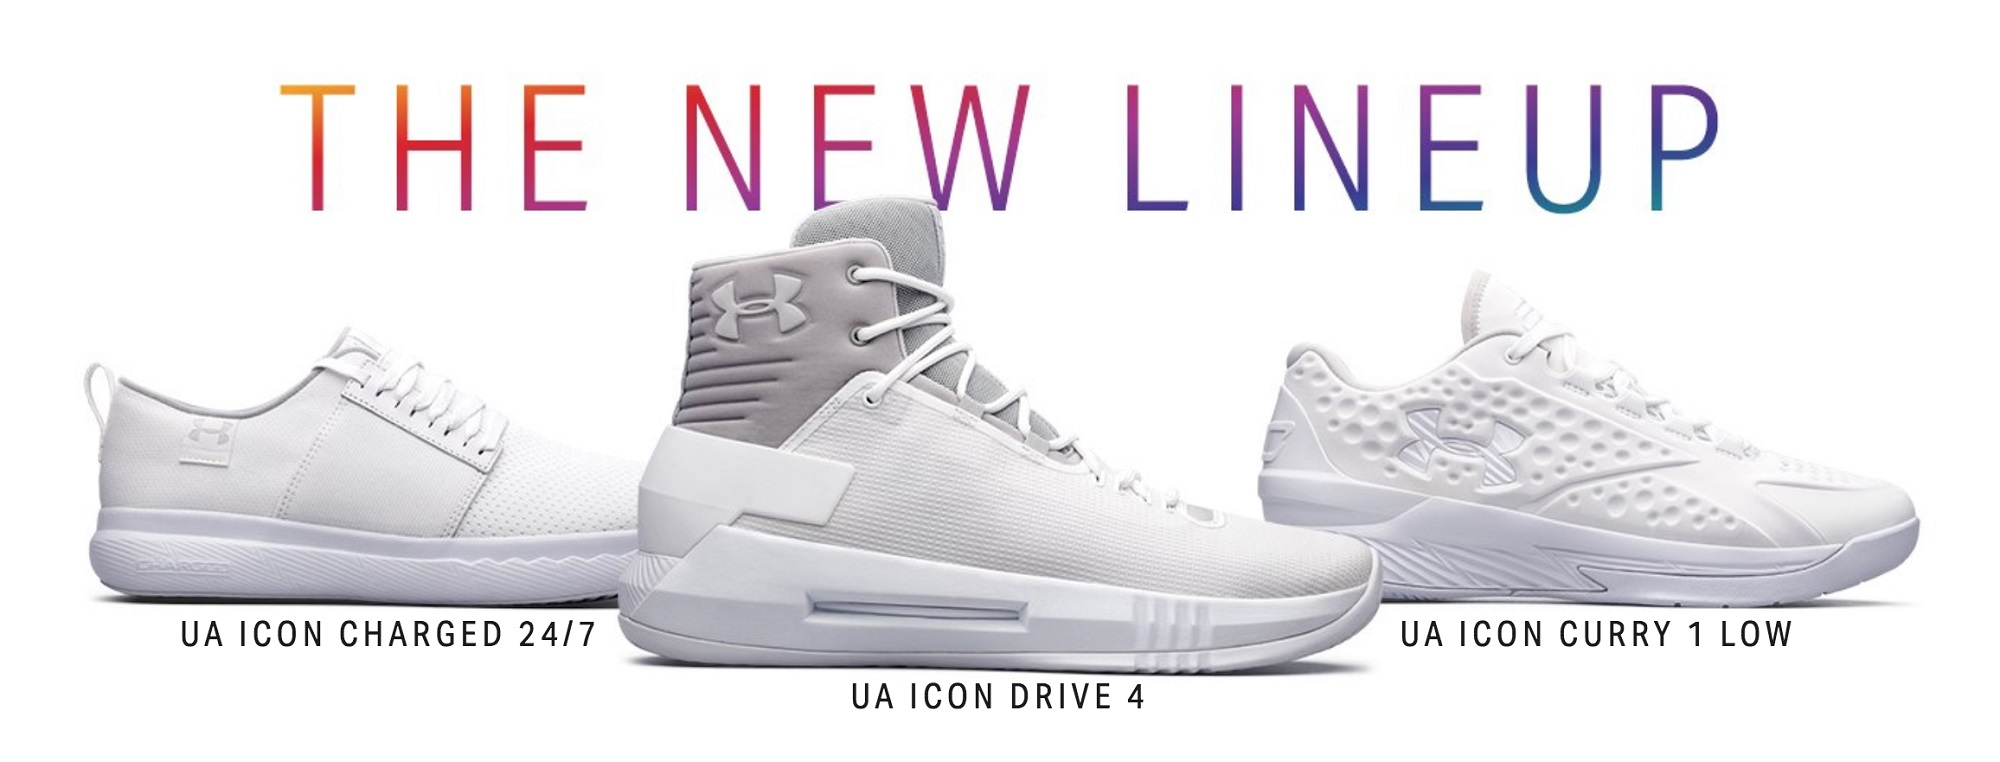 UA-Icon-curry-1-drive-4-charged-24-7